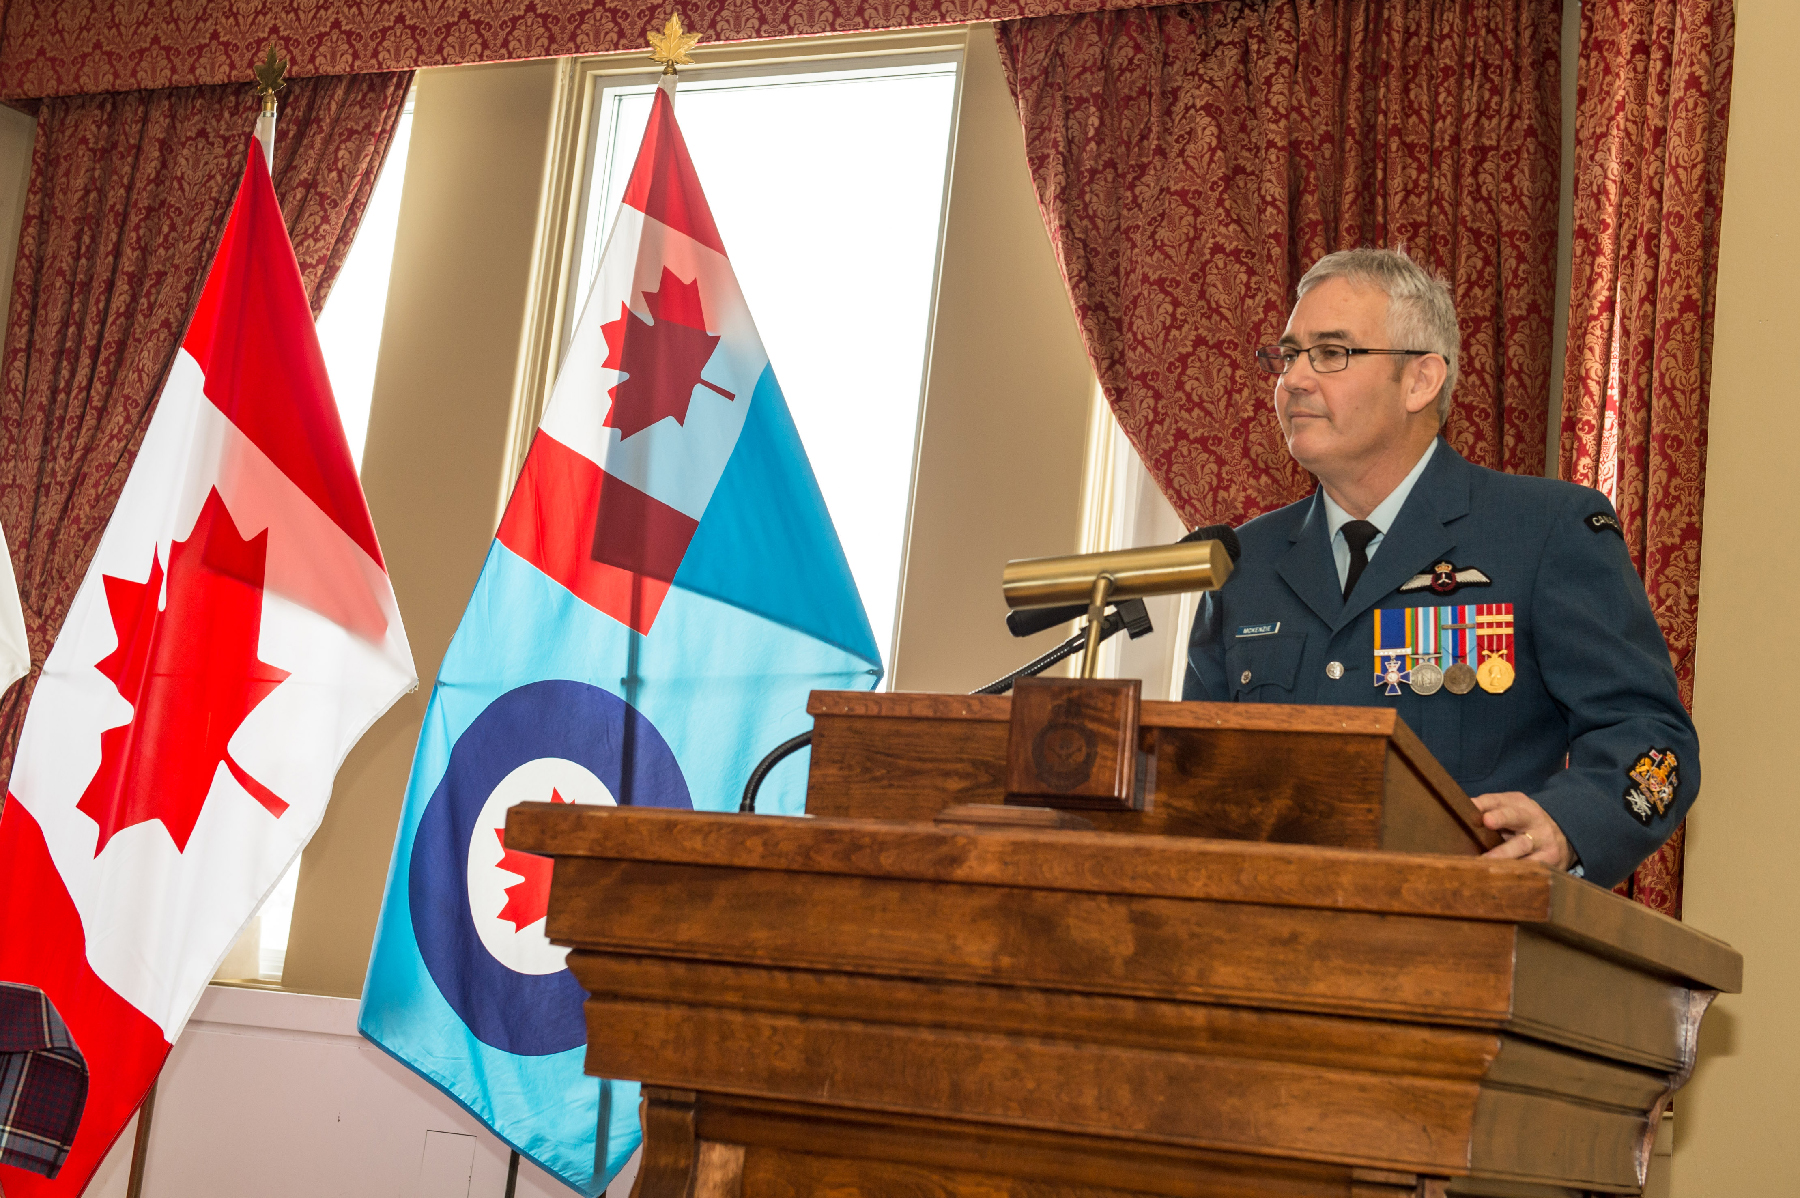 RCAF Reserve Chief Warrant Officer, Chief Warrant Officer Jim McKenzie, addresses attendees during his appointment ceremony at 8 Wing Trenton, Ontario, on January 21, 2020. PHOTO: Corporal Kenneth Beliwicz